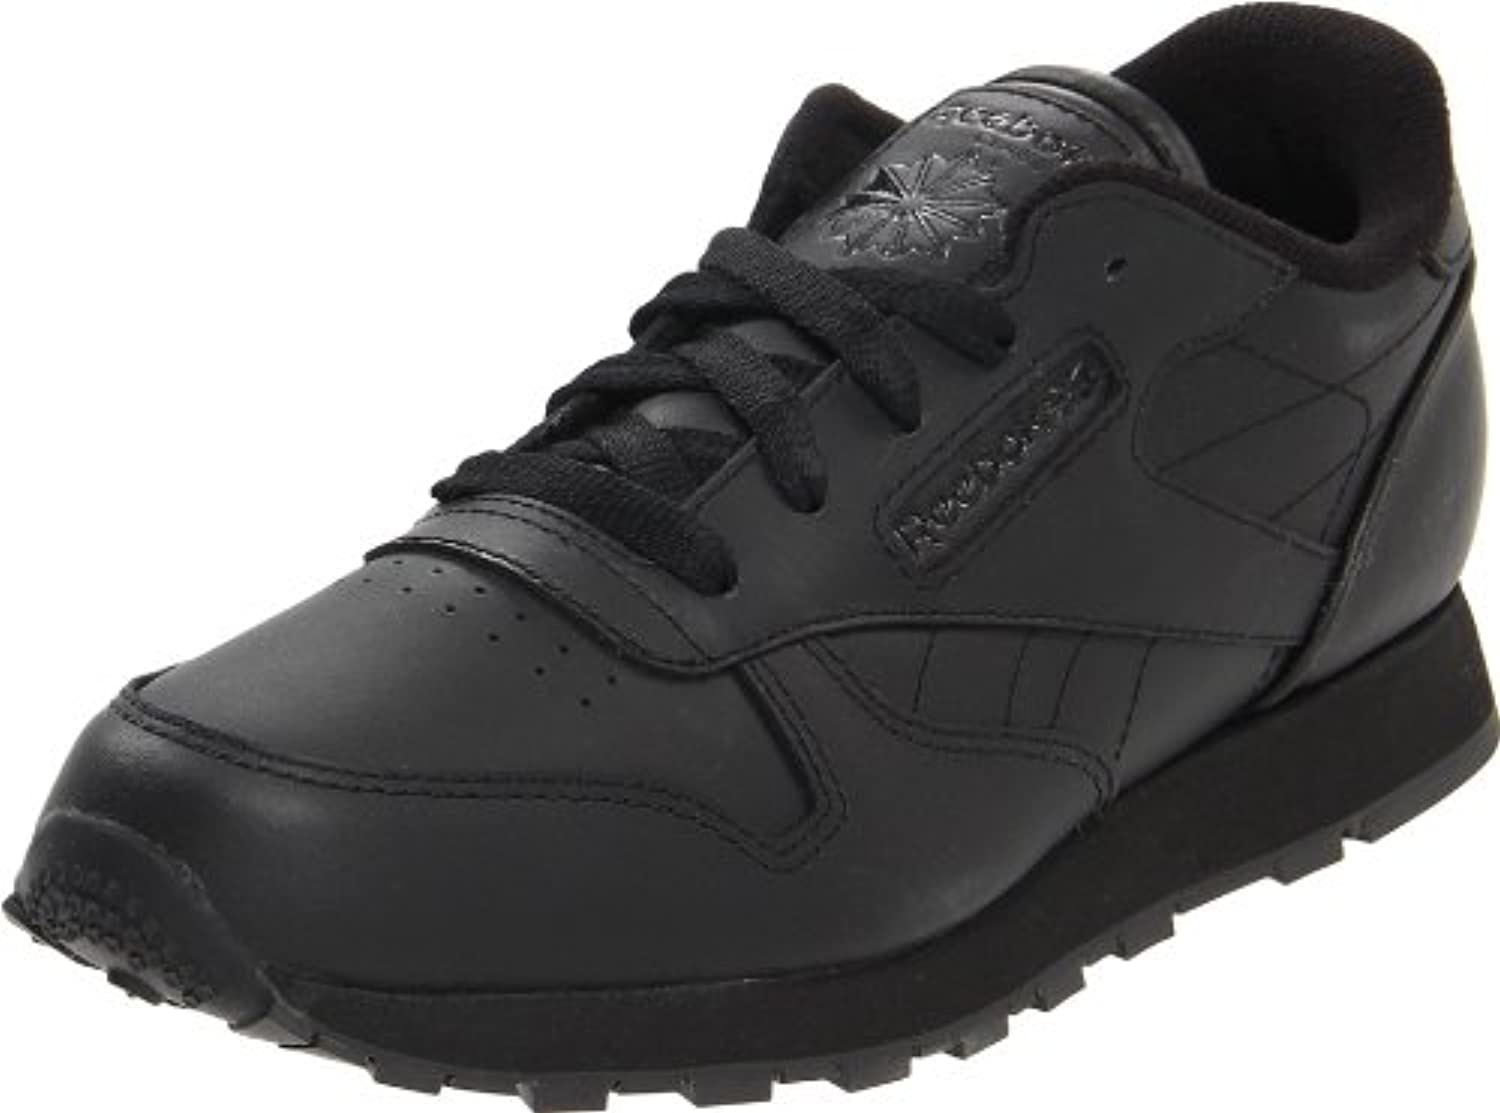 Reebok Classic Leather Black Black Youths Trainers Size 3 UK